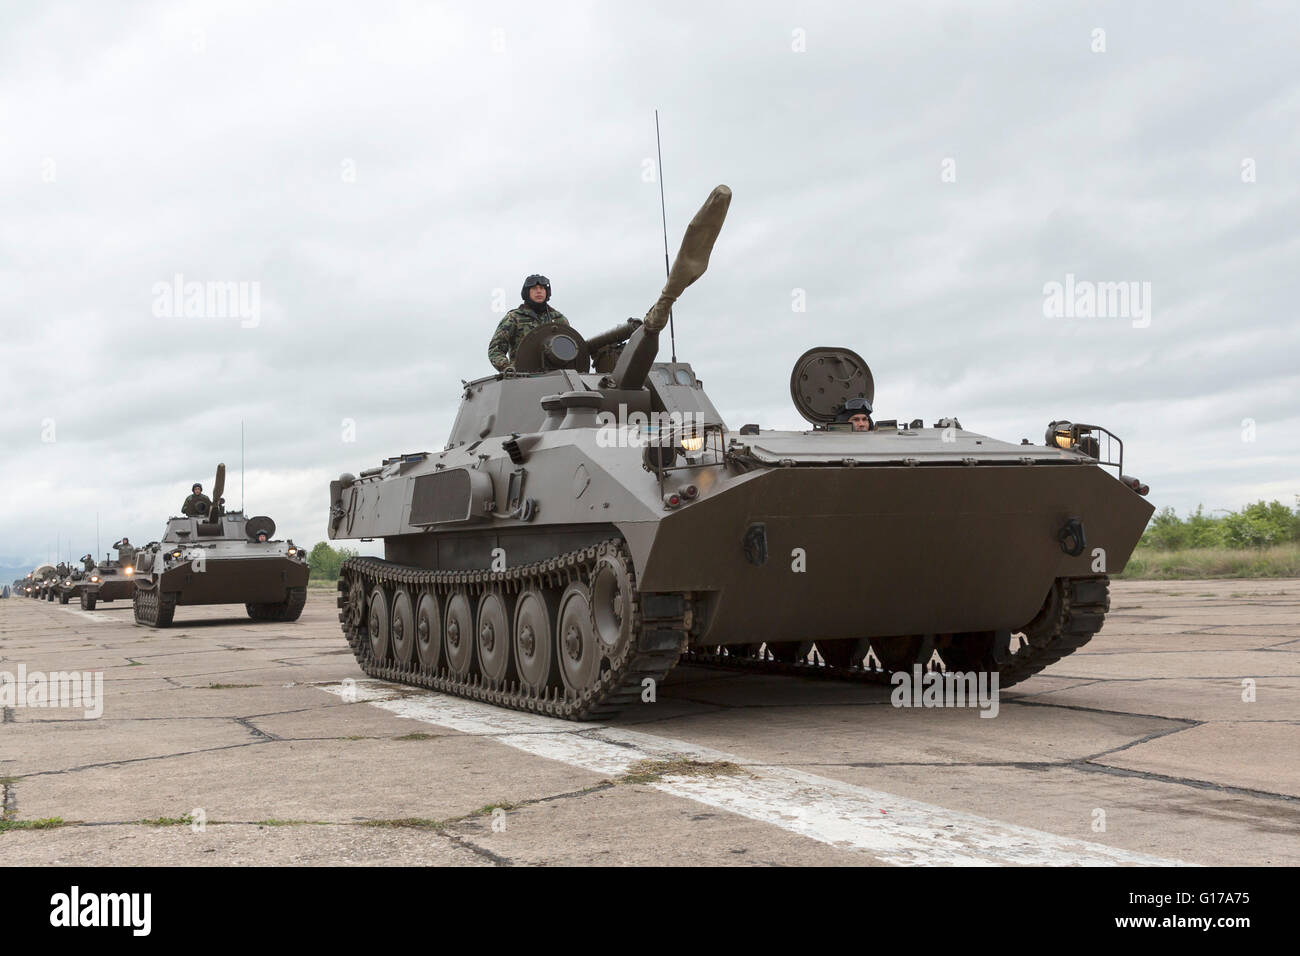 Sofia, Bulgaria - May 4, 2016: Soldiers from the Bulgarian army are preparing for a parade for Army's day. They - Stock Image